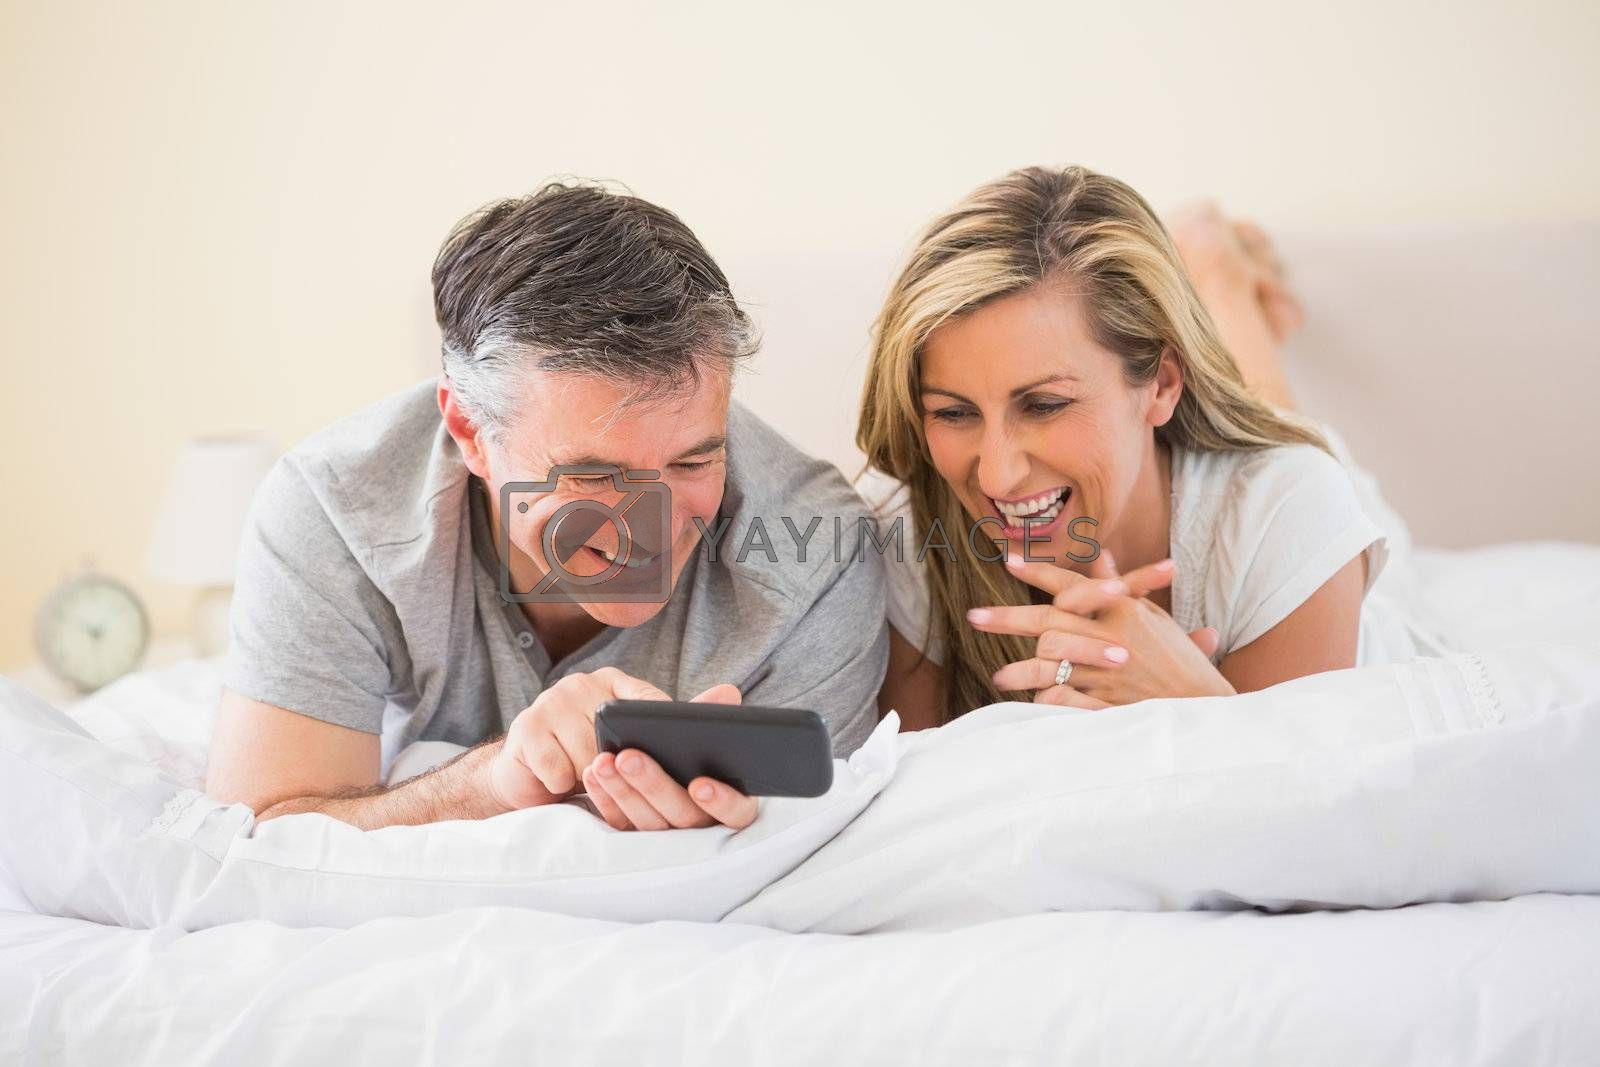 Happy couple lying on bed and watching a mobile phone by Wavebreakmedia